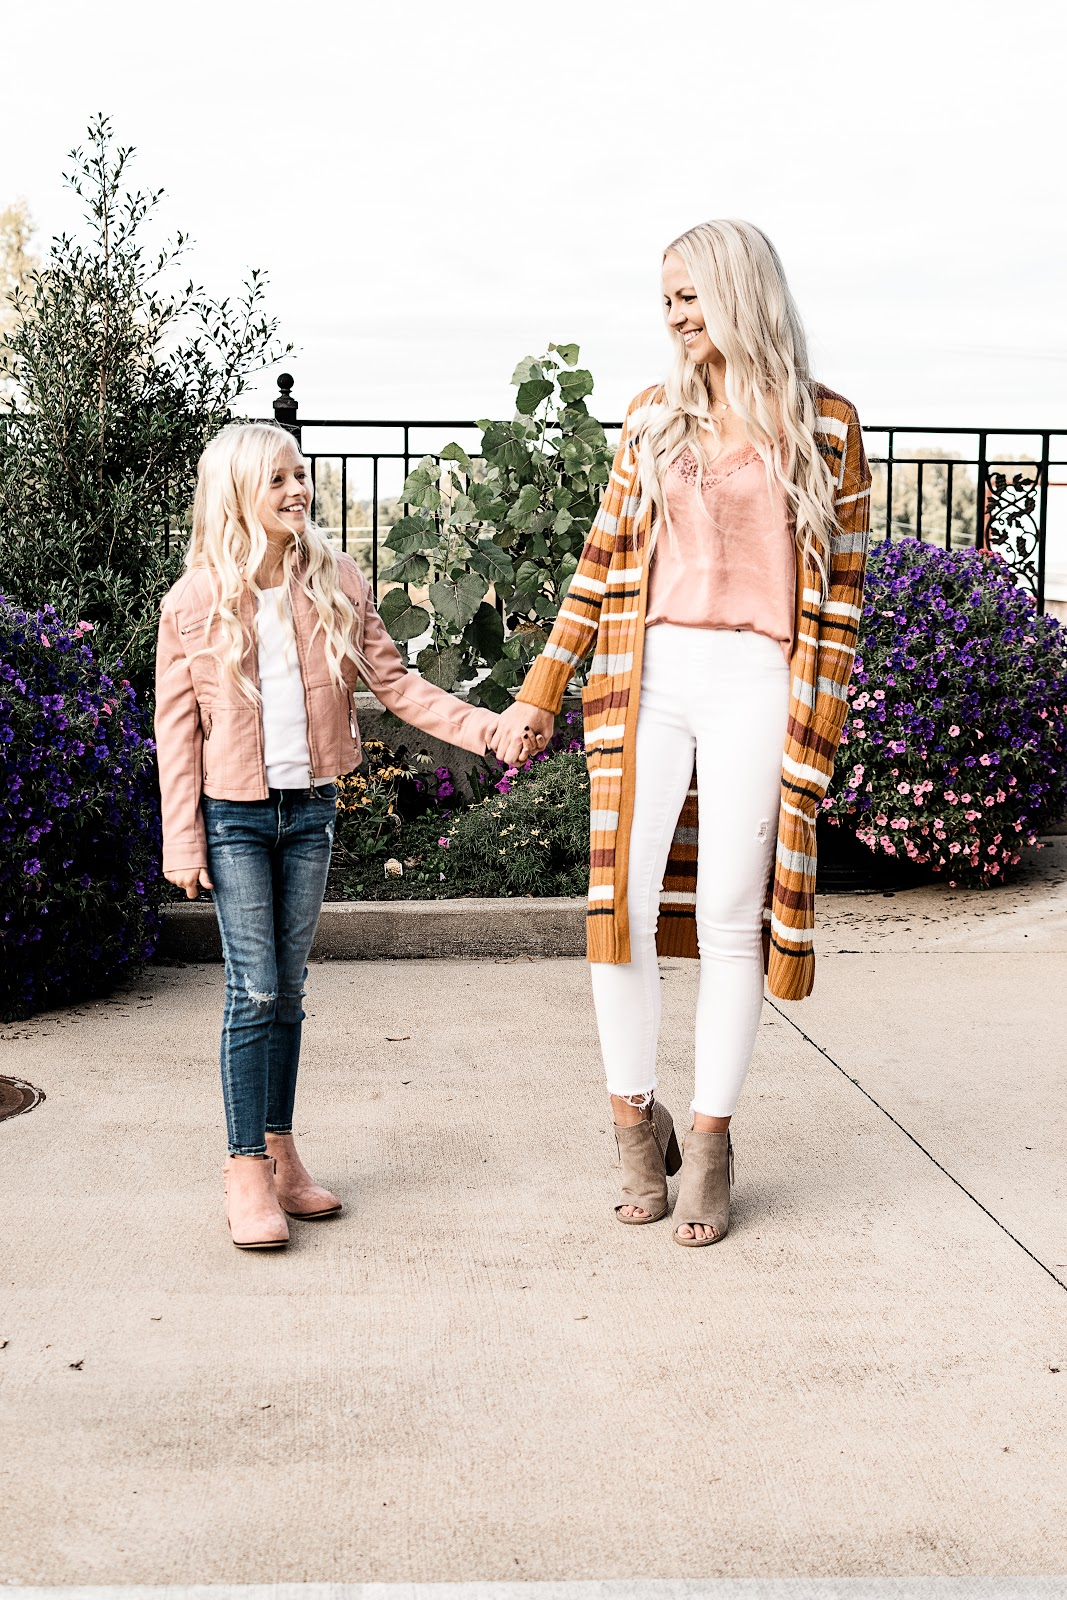 Fall Fashion Finds at Gordmans Fall Outfit Idea Inspo Blogger Blog St. Louis Missouri Midwest Mom and Me Mommy Style Mom Style Mom and Daughter Cardigan Booties Jeans AG Jeans Spanx Jeans Satin Cami Peep Toe Booties